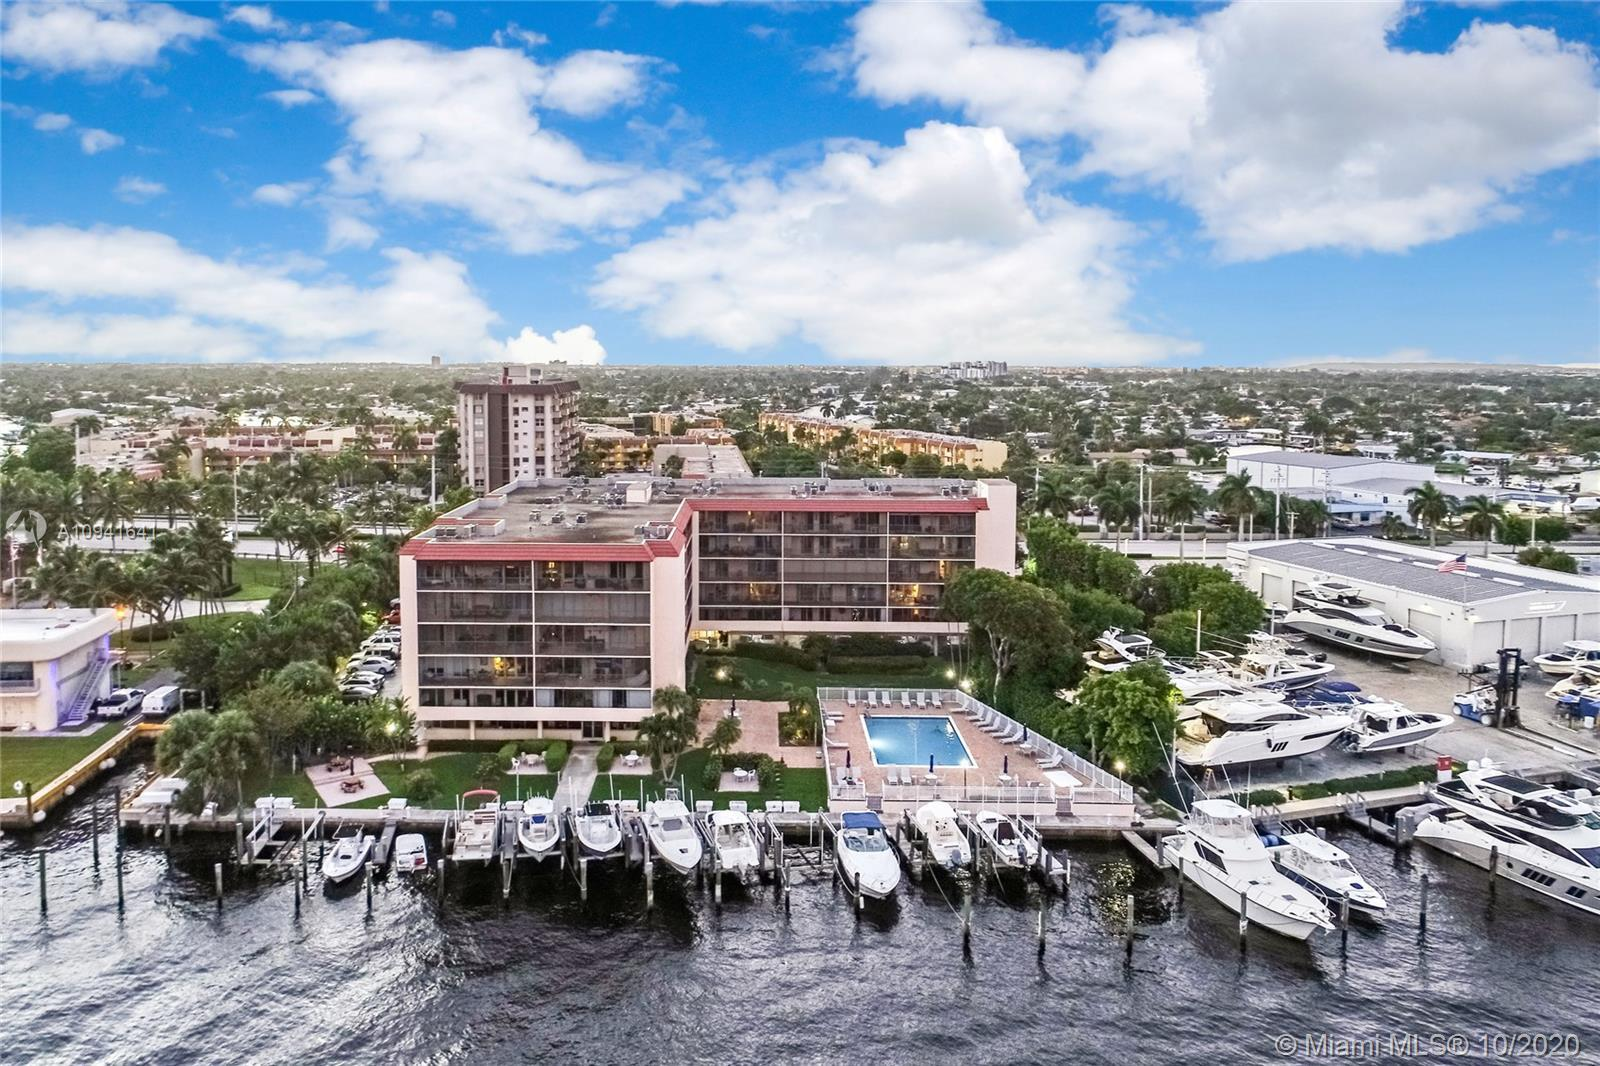 Lovely 2 bedroom, 2 bathroom condo in the well-maintained community Bay Yacht Harbor! This wonderful